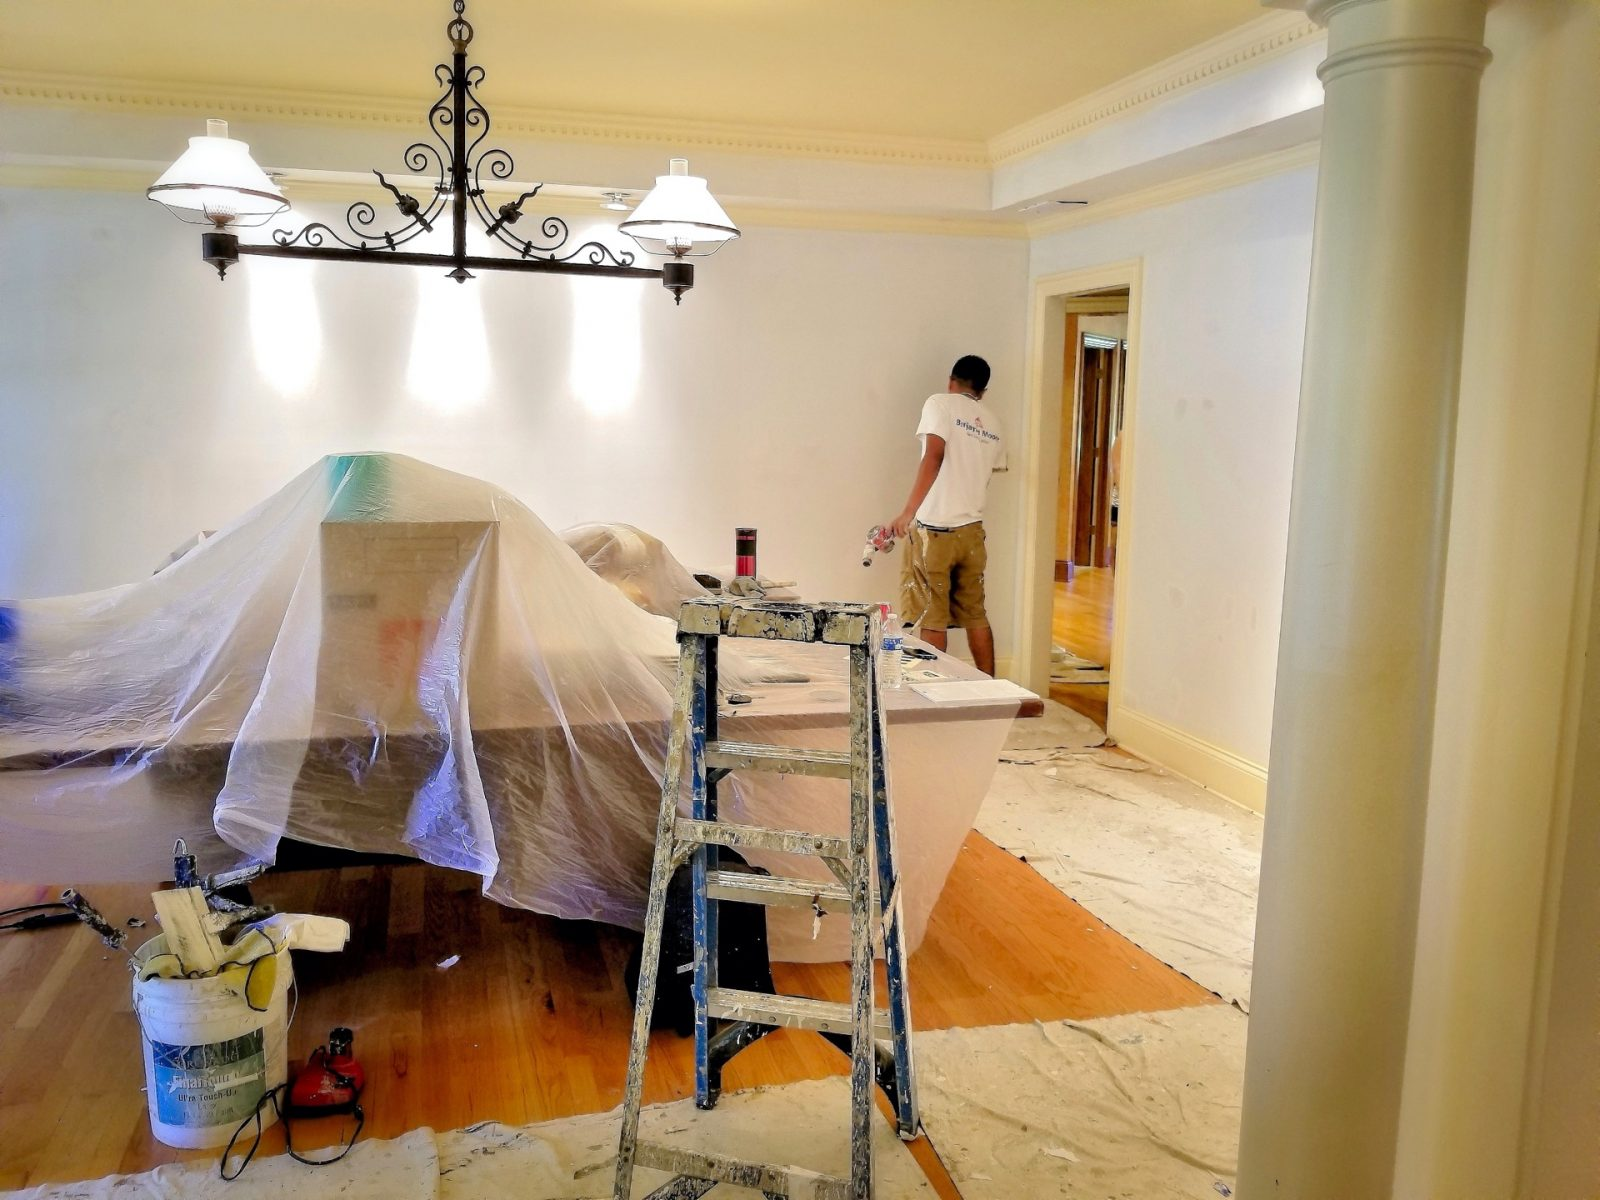 Painters paint a room during a remodel